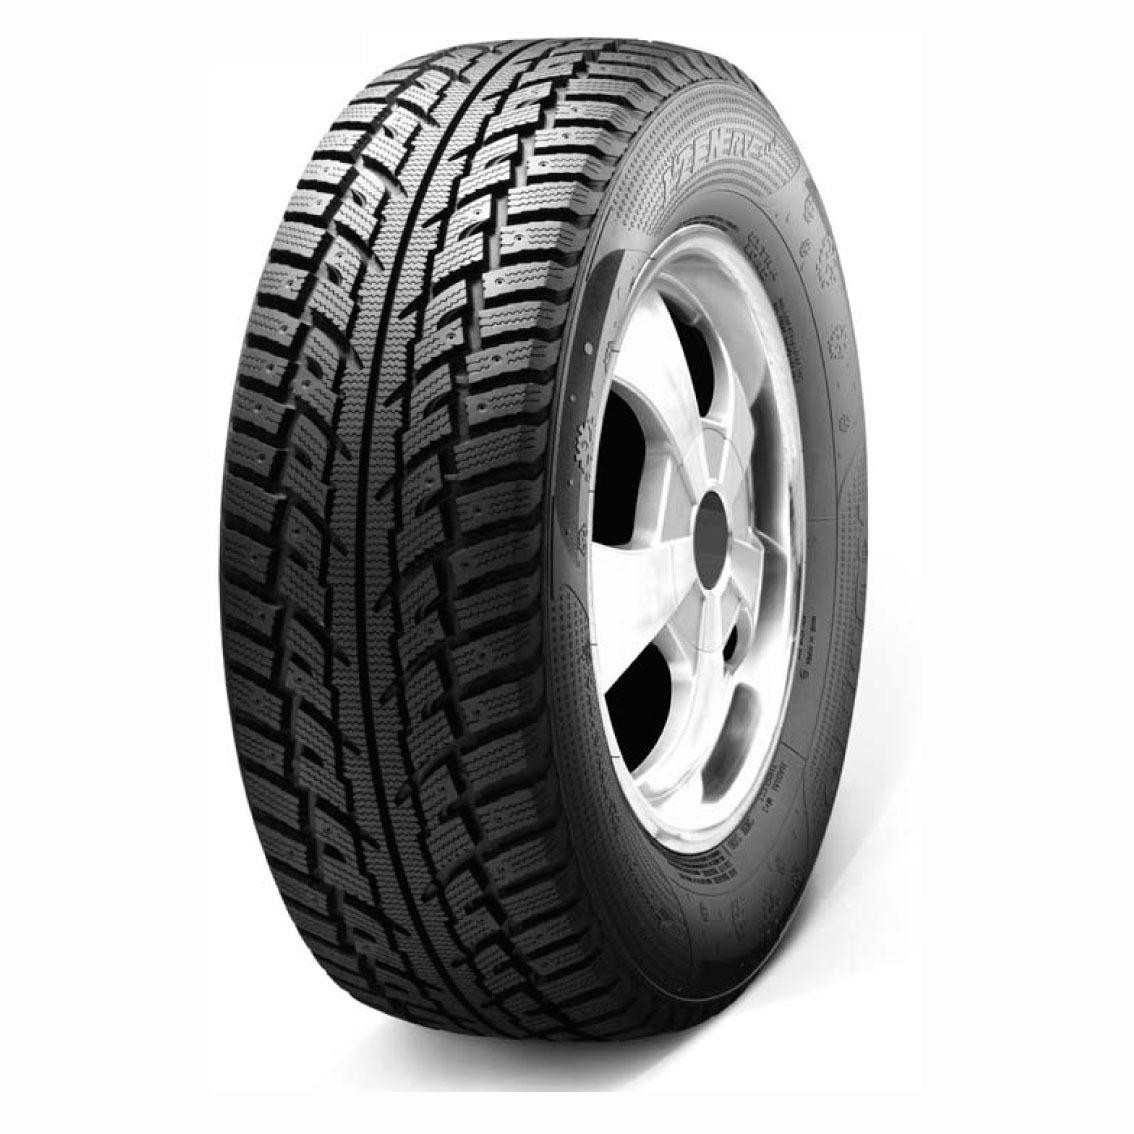 275/65 R17 MARSHAL IZEN RV KC16 115T